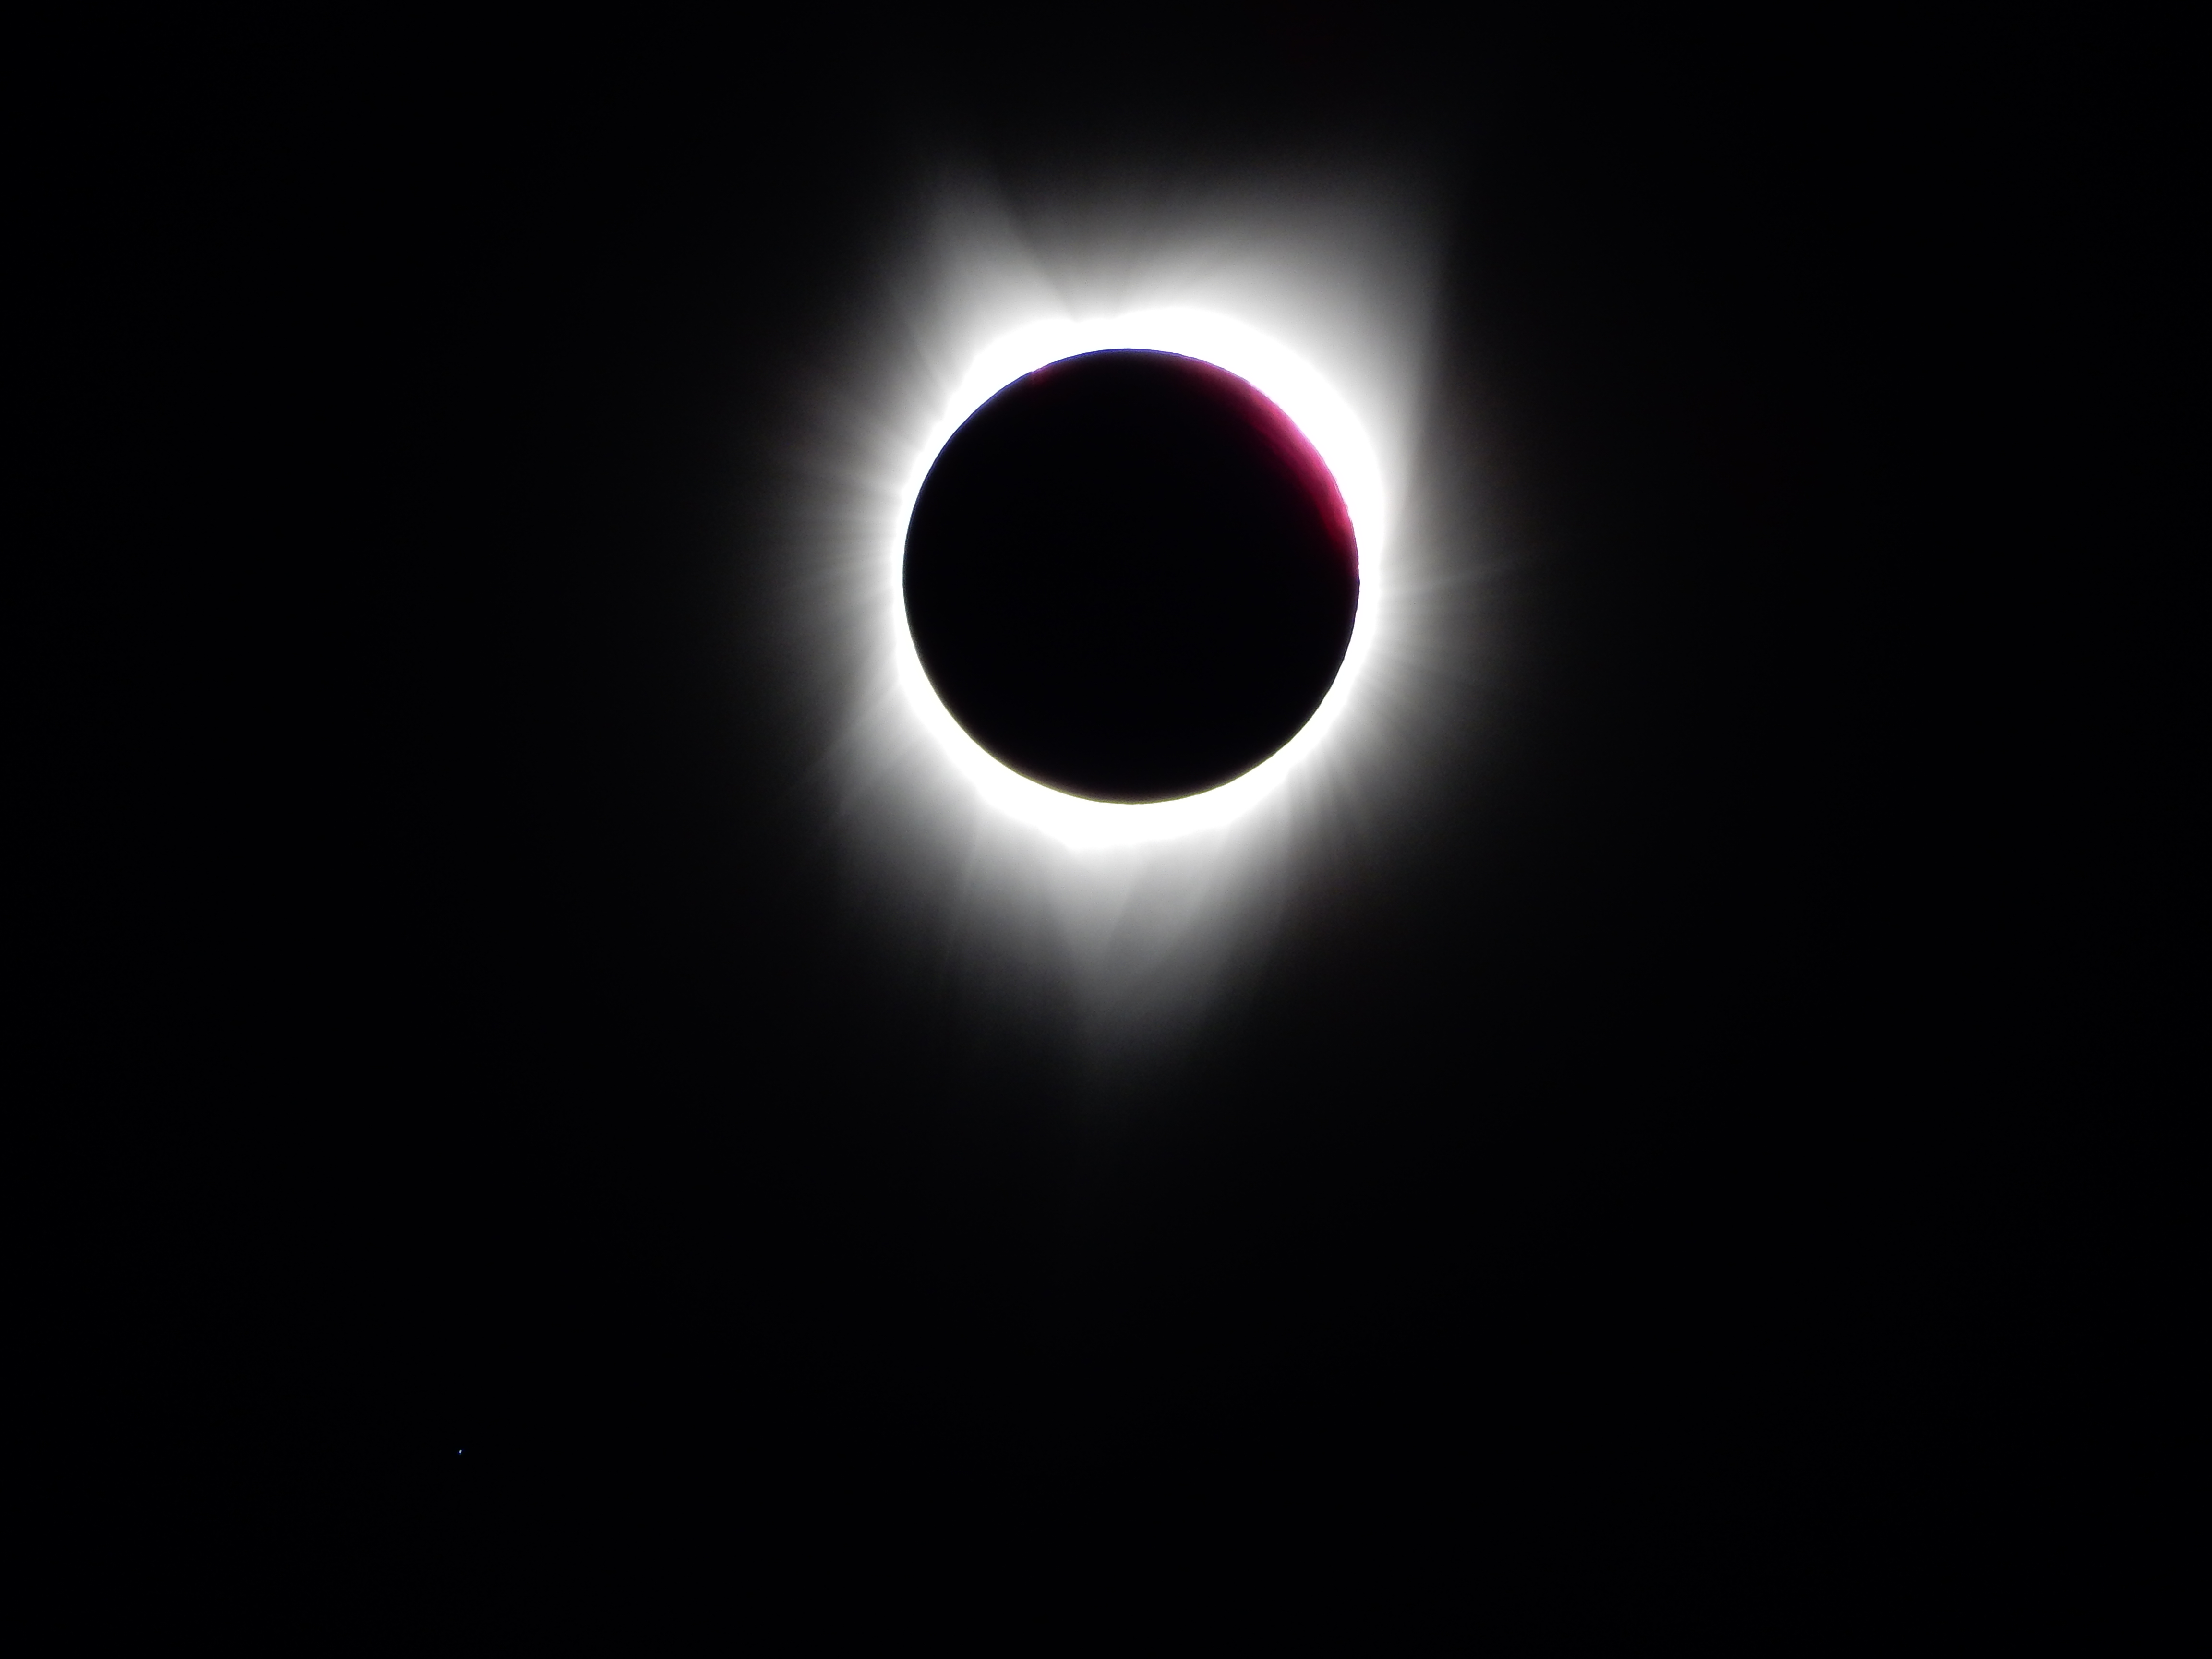 Last seconds of totality, solar filter removed.Last seconds of totality, solar filter removed.